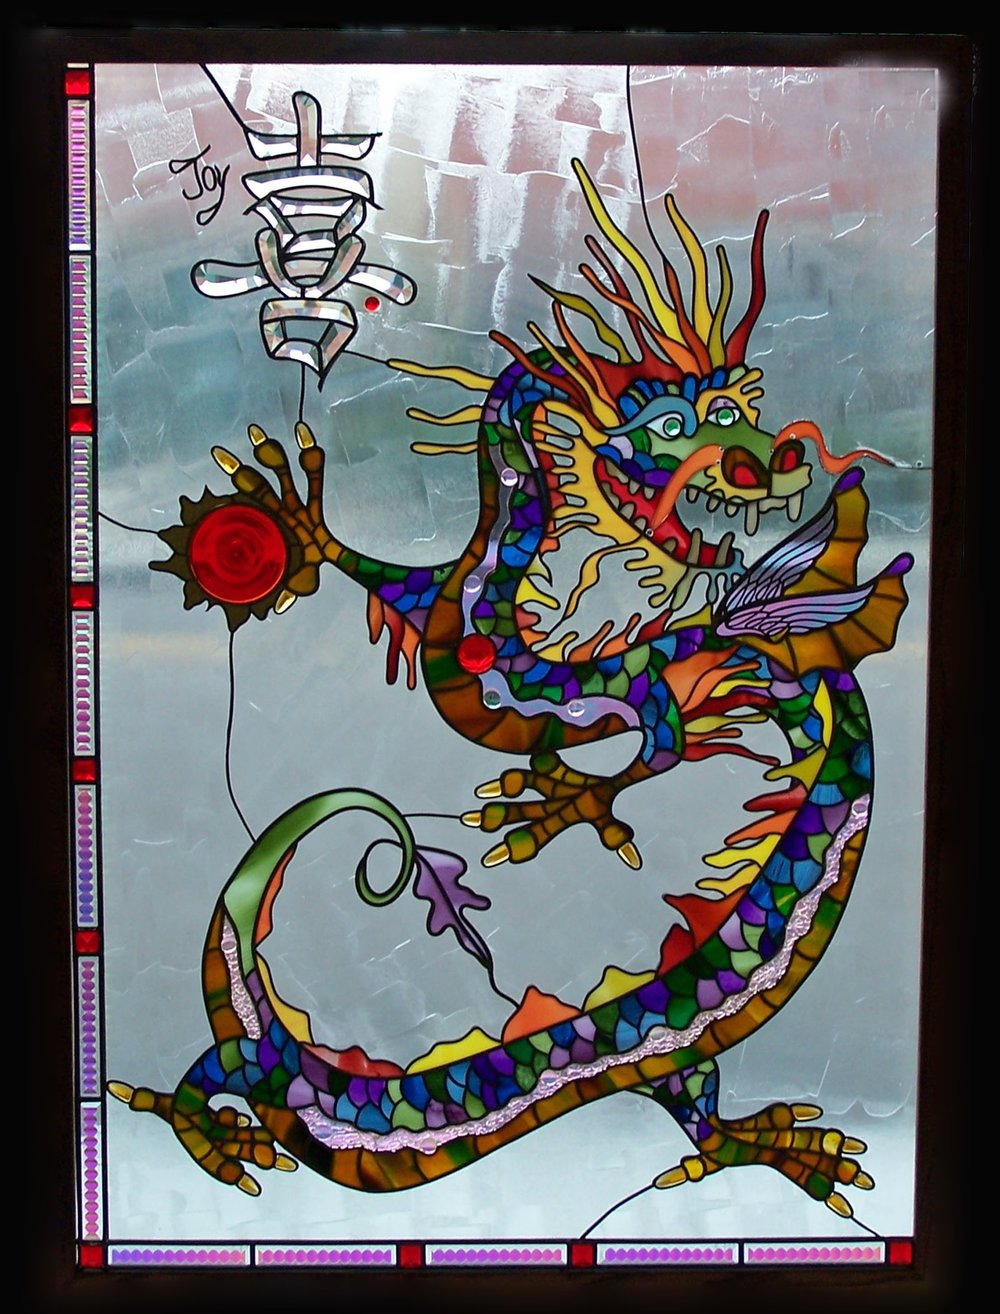 An award winning design, this four-toed dragon is a symbol of protection along with the Chinese character for 'Joy'. It is framed and hung in a Vista home.